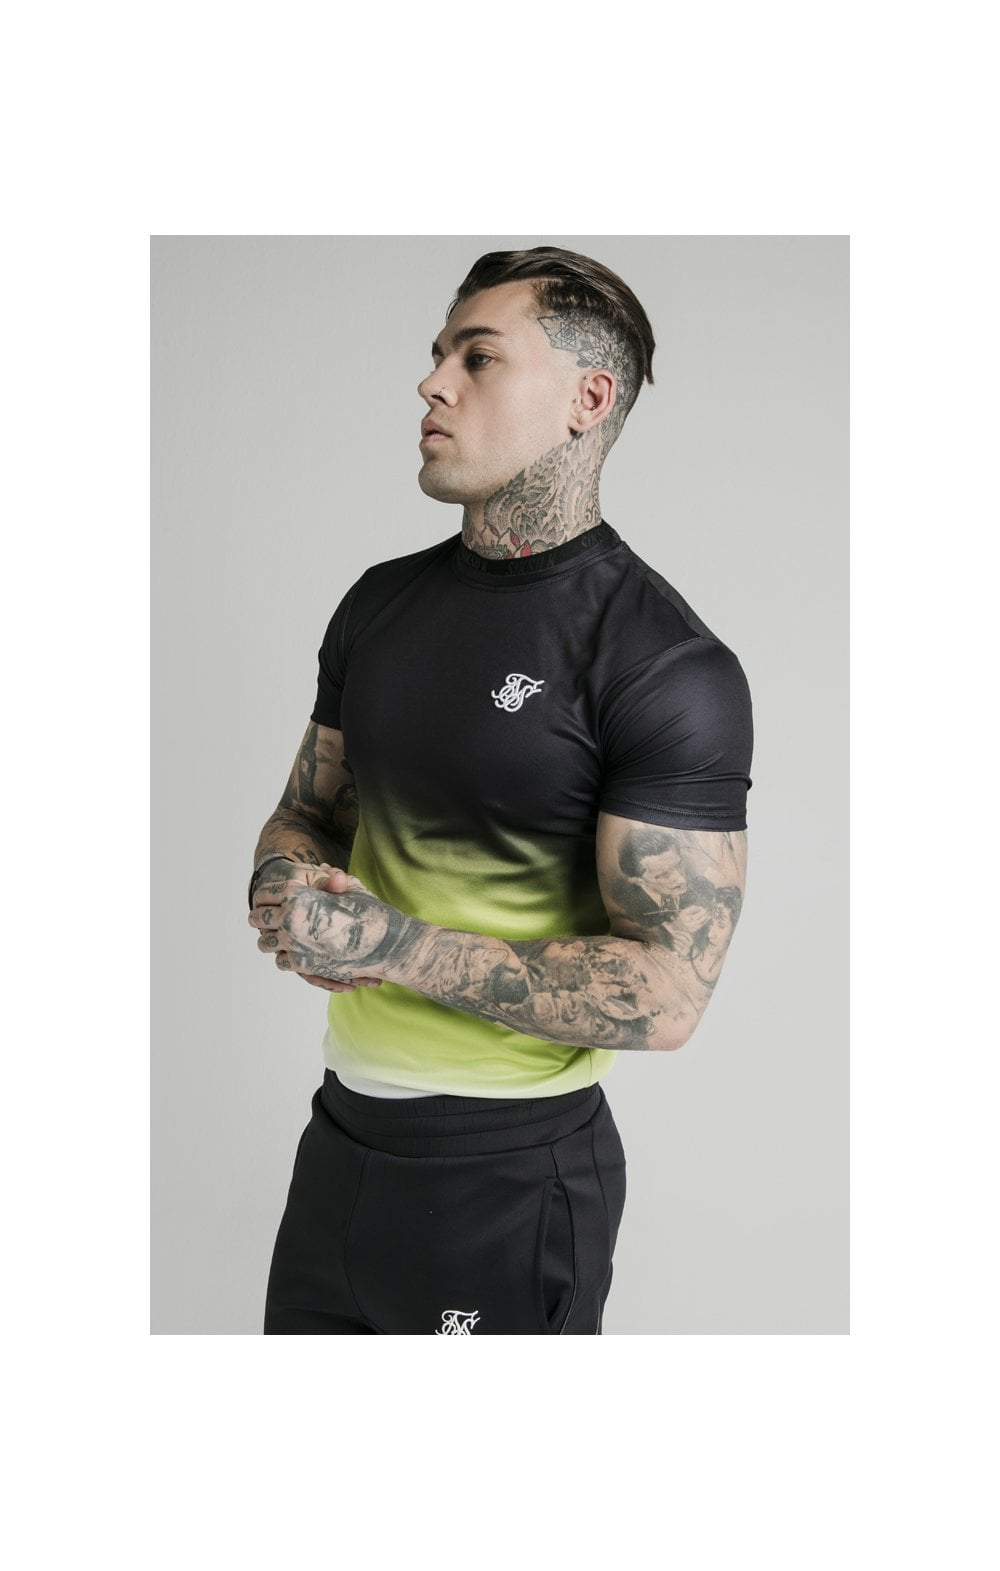 SikSilk S/S Tri Fade Tape Collar Tee - Black, Fluro & White